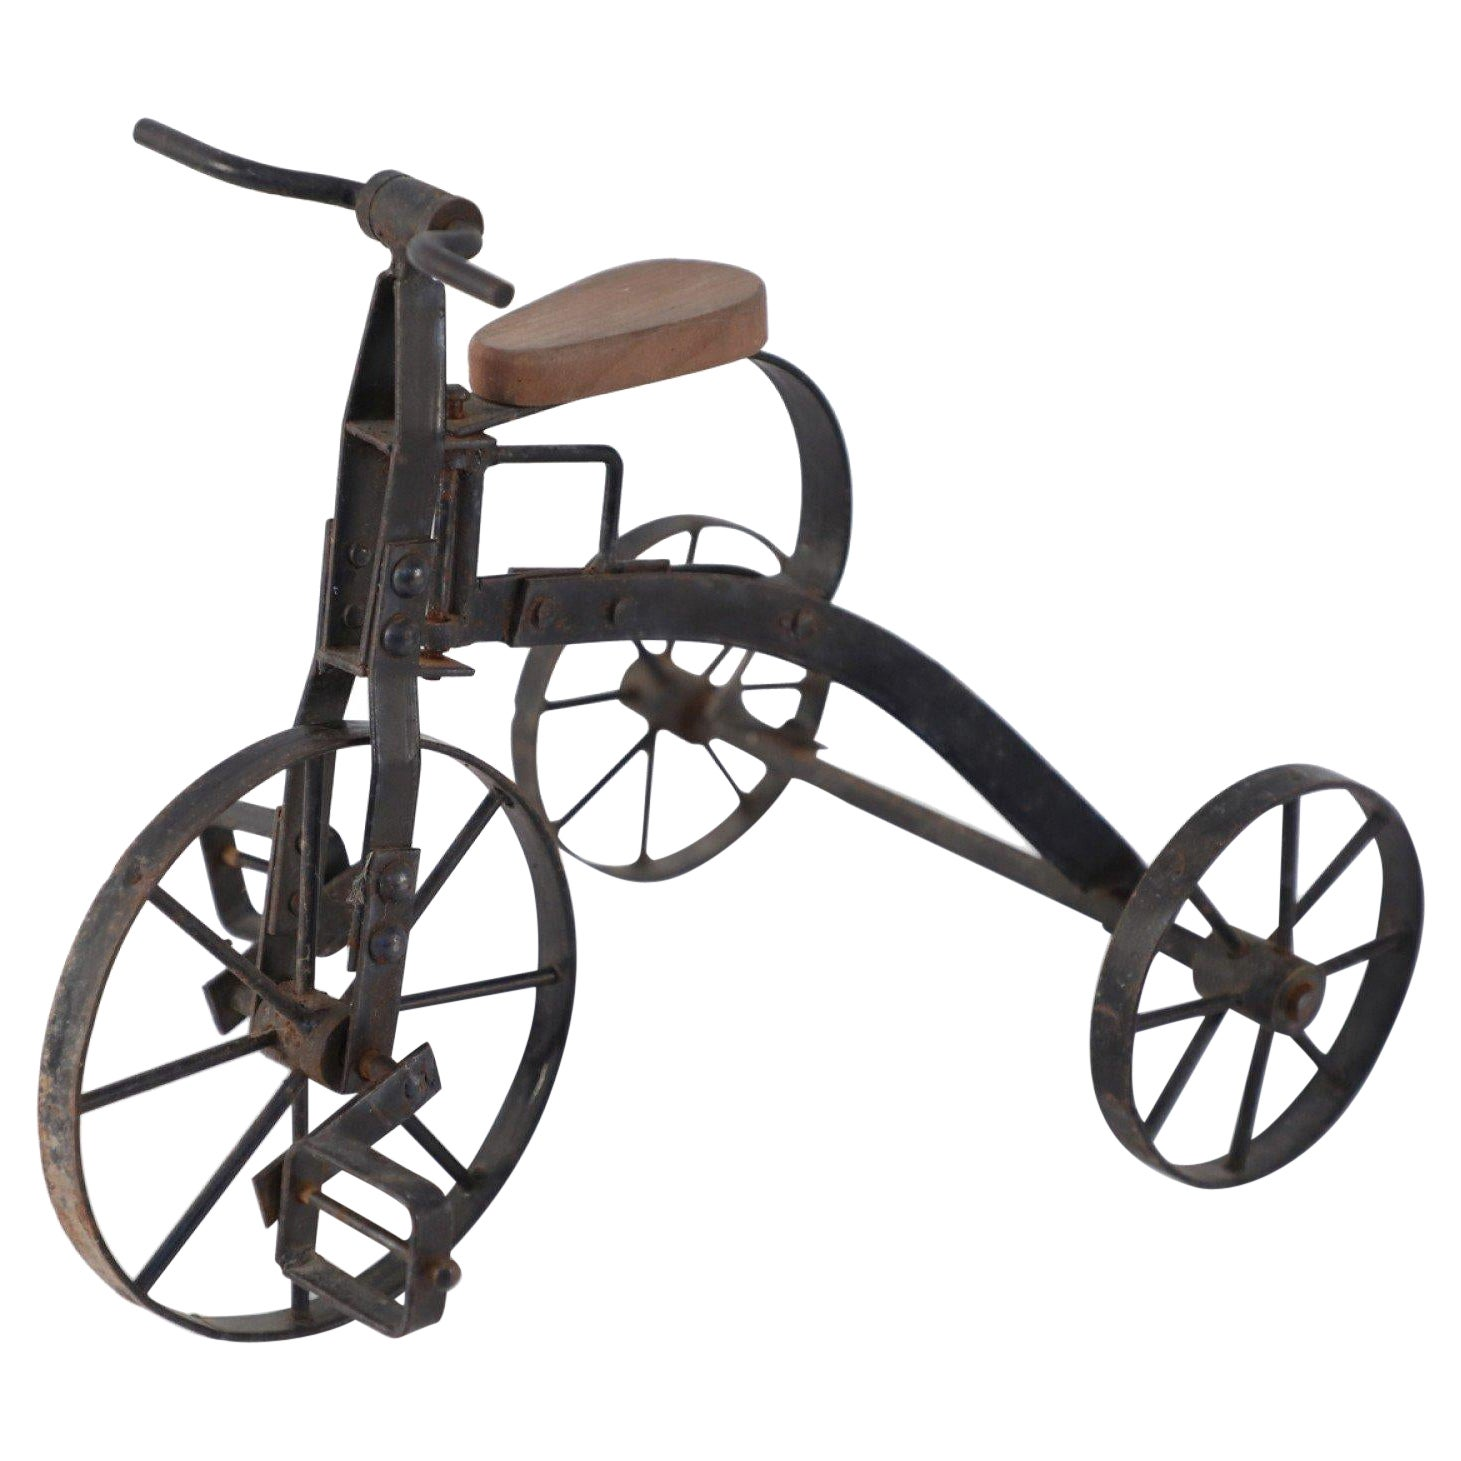 American Country Iron Miniature Bicycle Sculpture